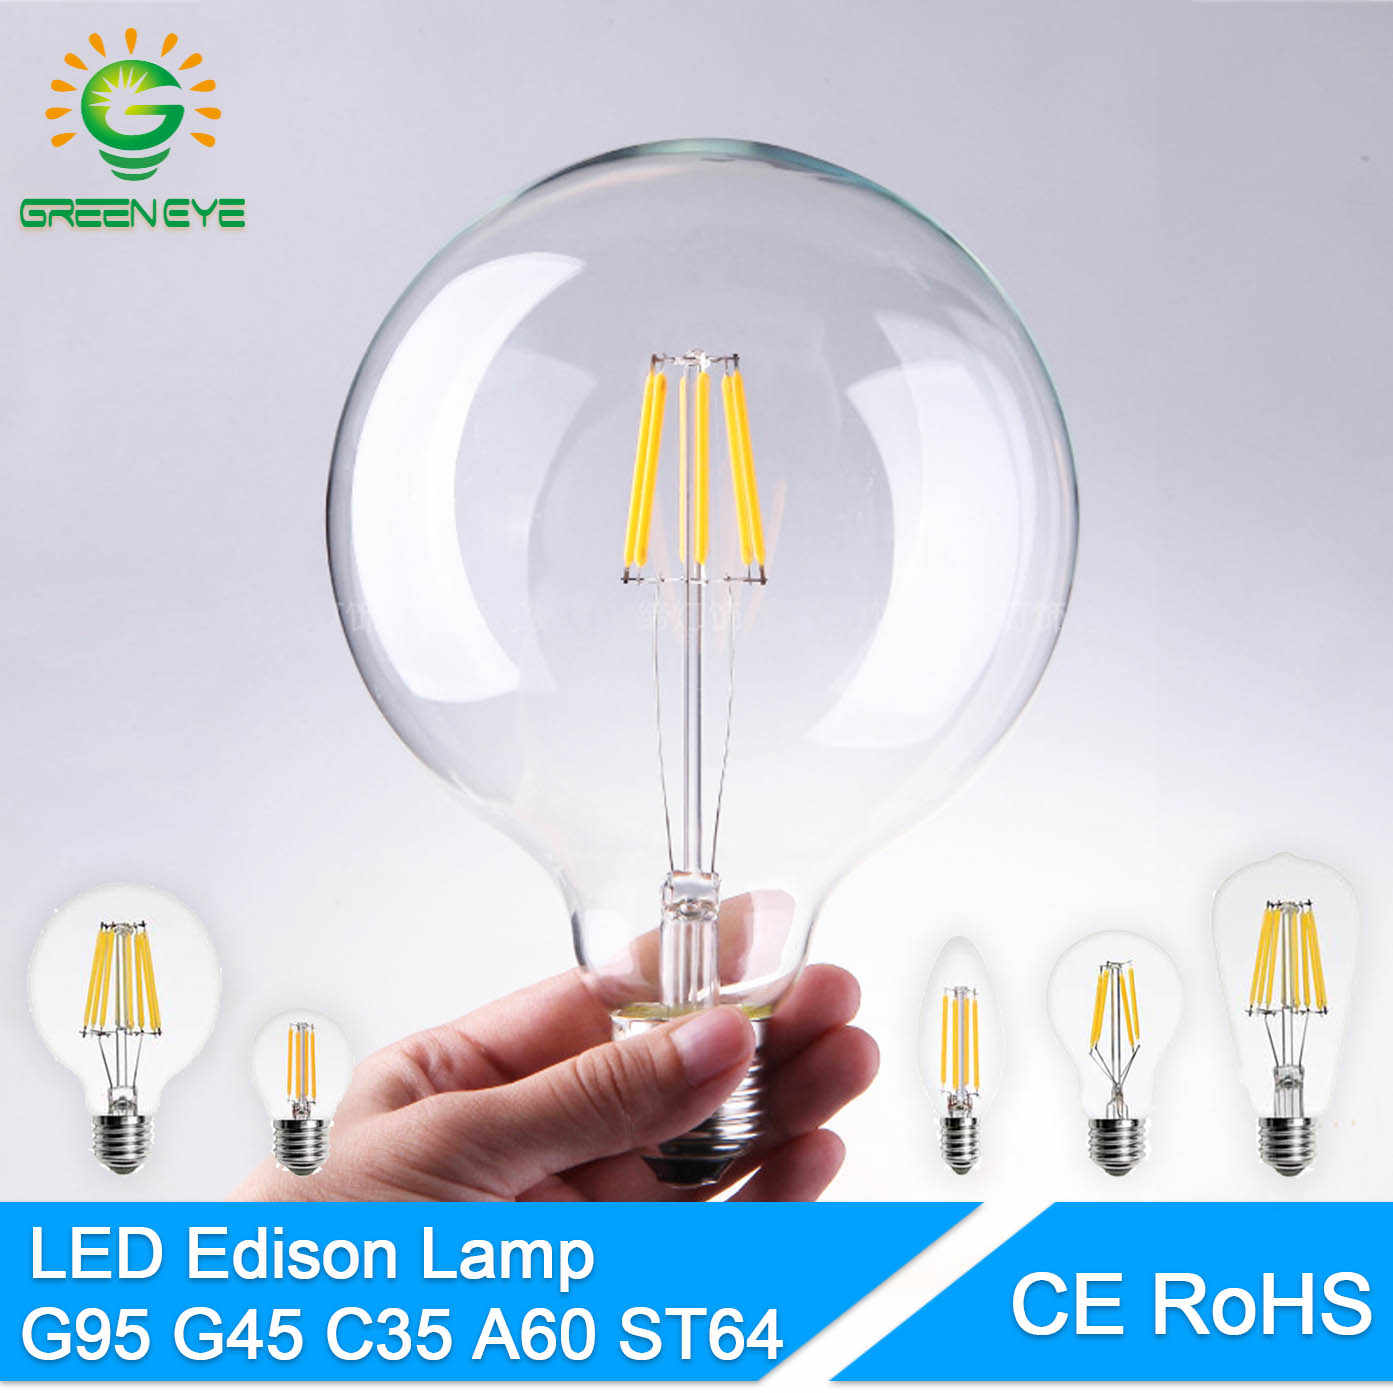 GreenEye High Bright E27 E14 LED Bulb Vintage Edison LED Lamp 220V Retro Glass LED Filament Bulb Light Candle Spotlight Ampoule